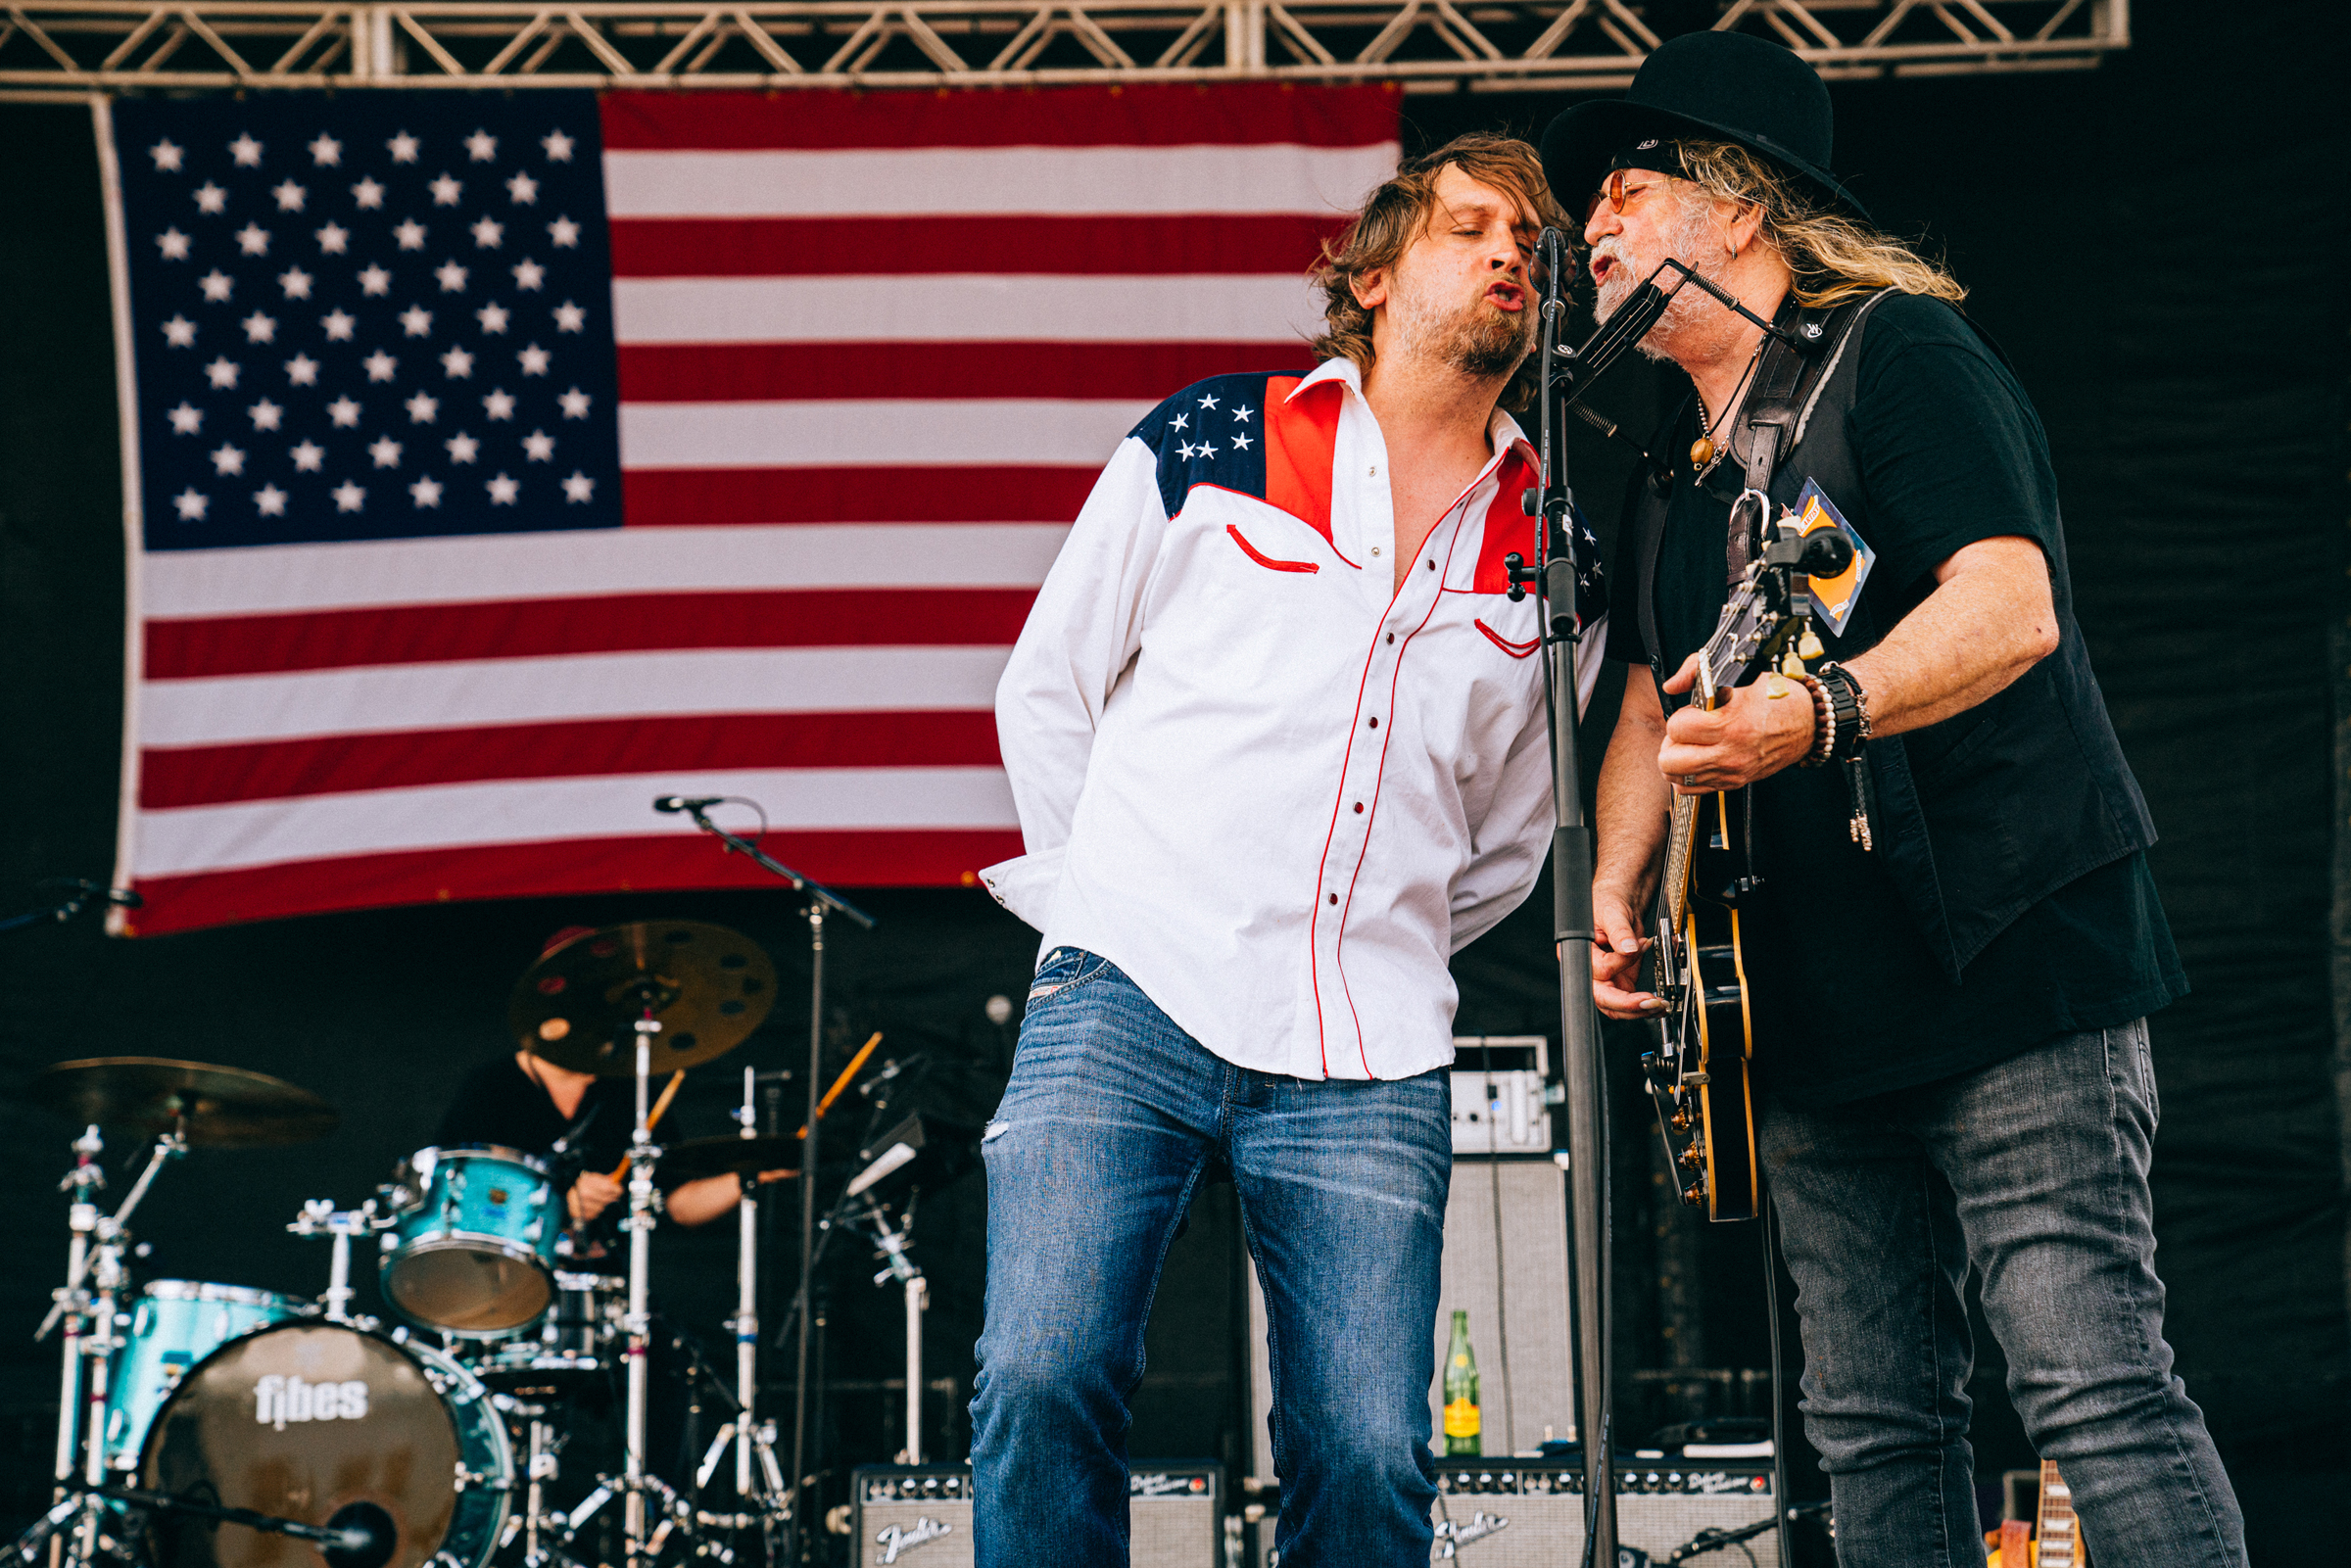 See Alison Krauss, Jamey Johnson at Willie Nelson's 4th of July Picnic Concert